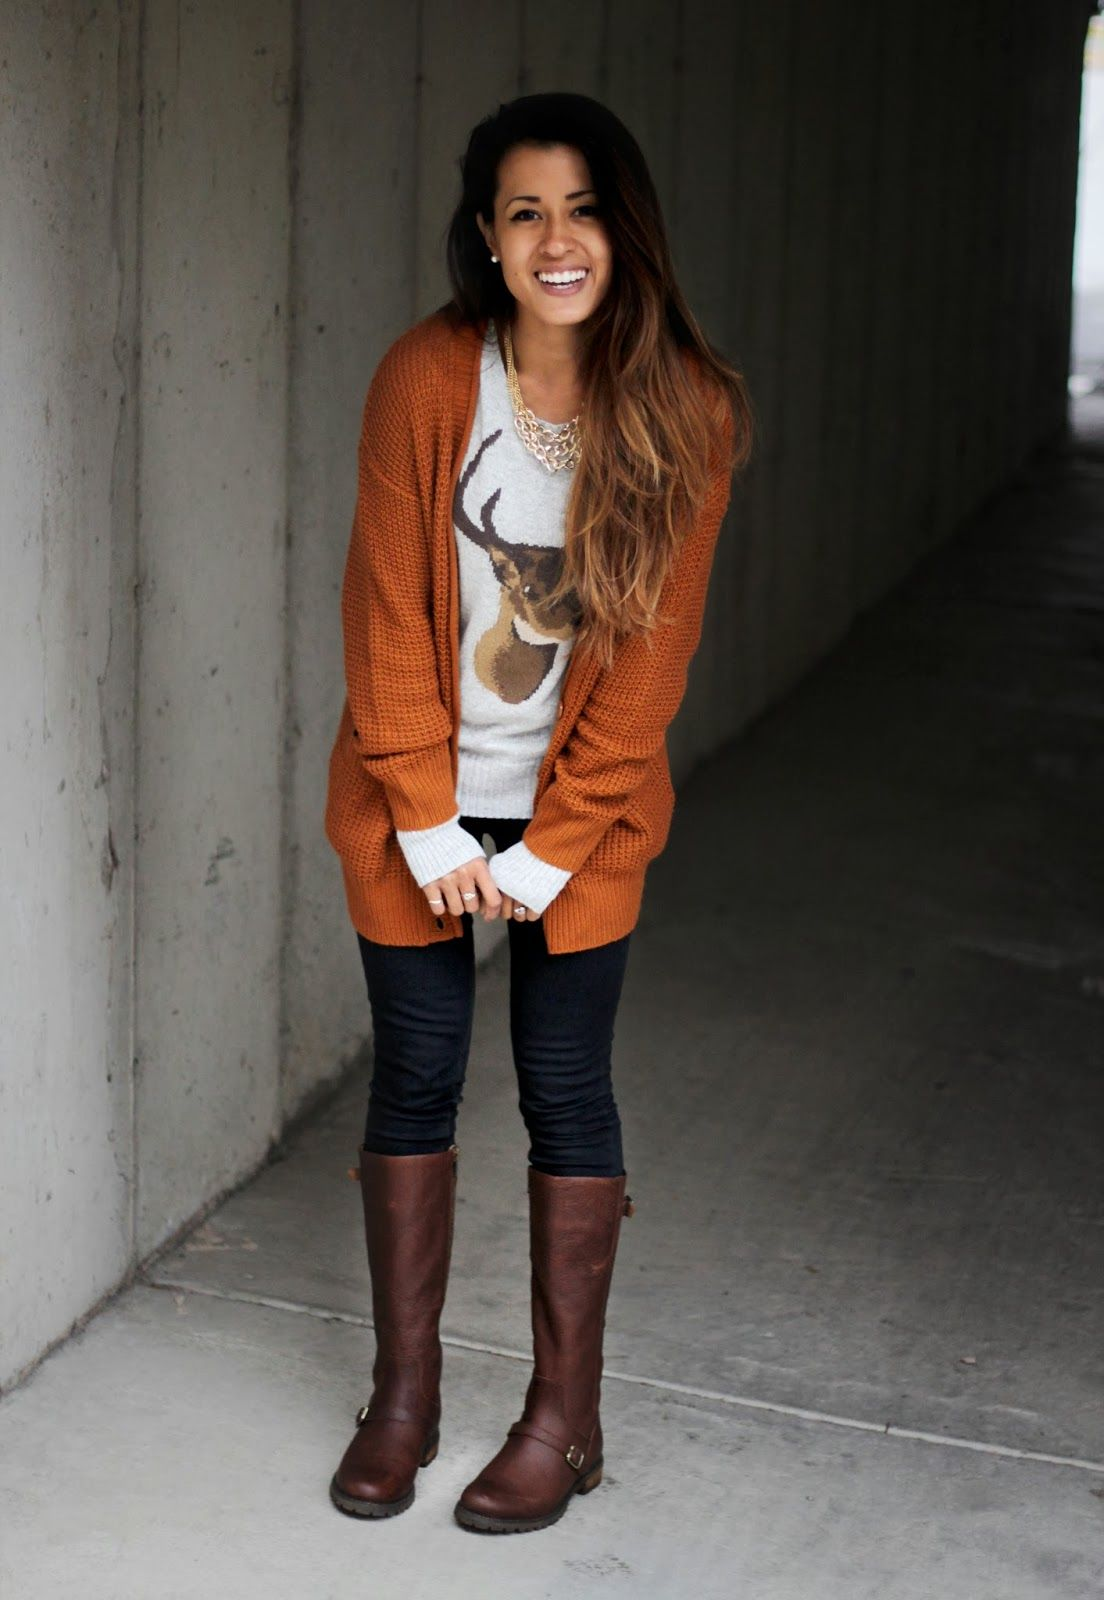 fall outfit | auteur ariel [ blog + youtube ] | pinterest